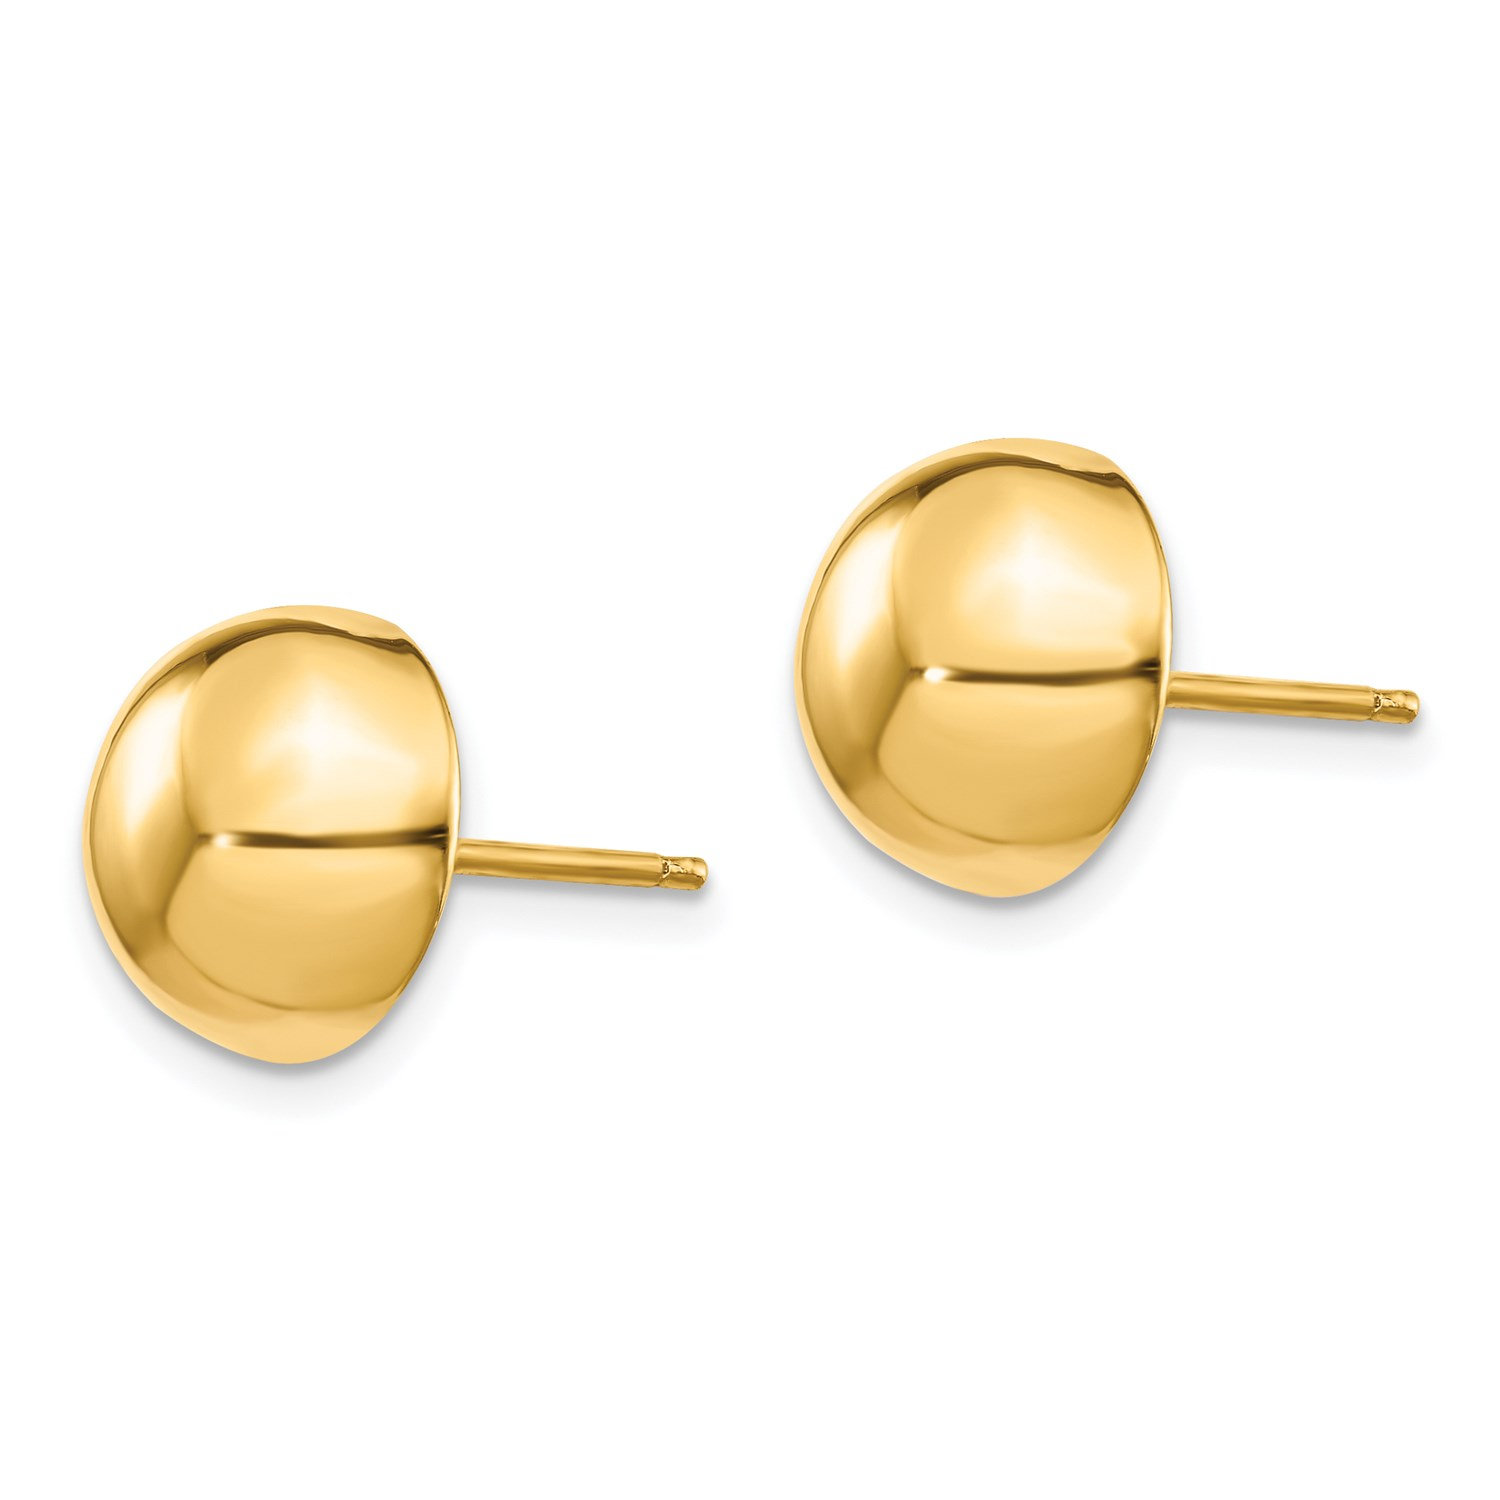 58814ed29 14k Yellow Gold Polished 10mm Half Ball Post Stud Earrings ...